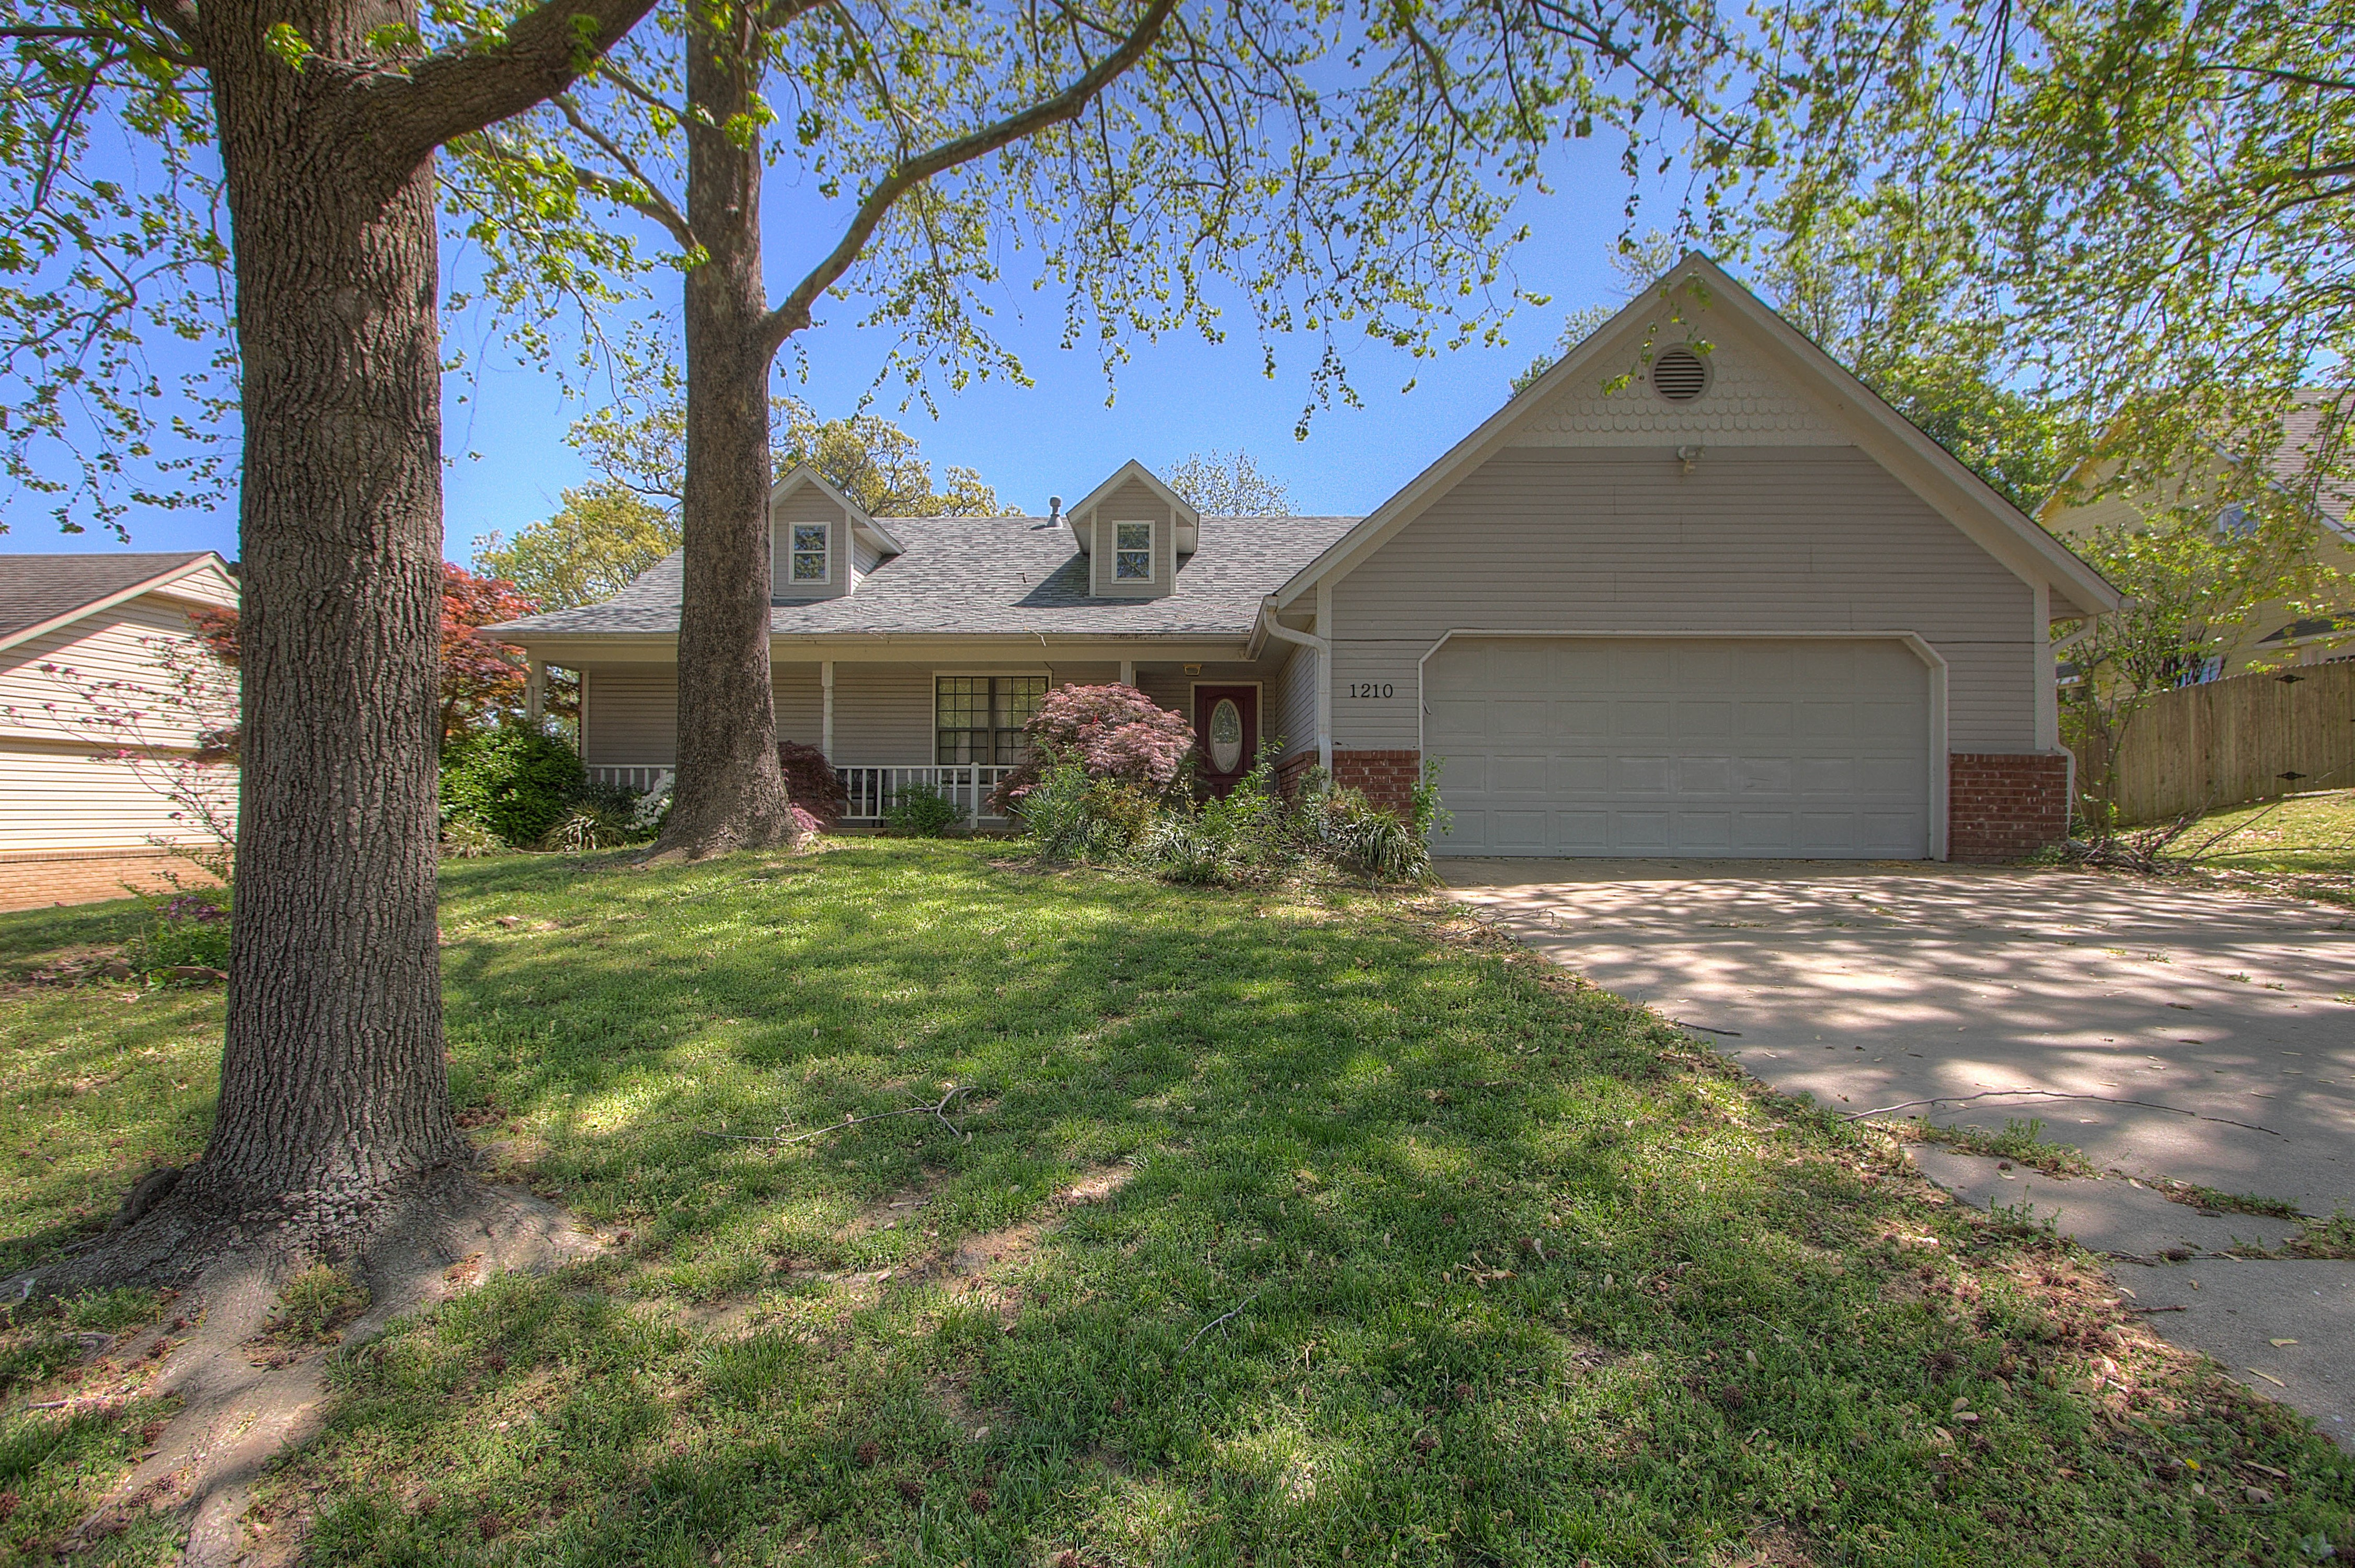 1210 N Miller Drive Property Photo